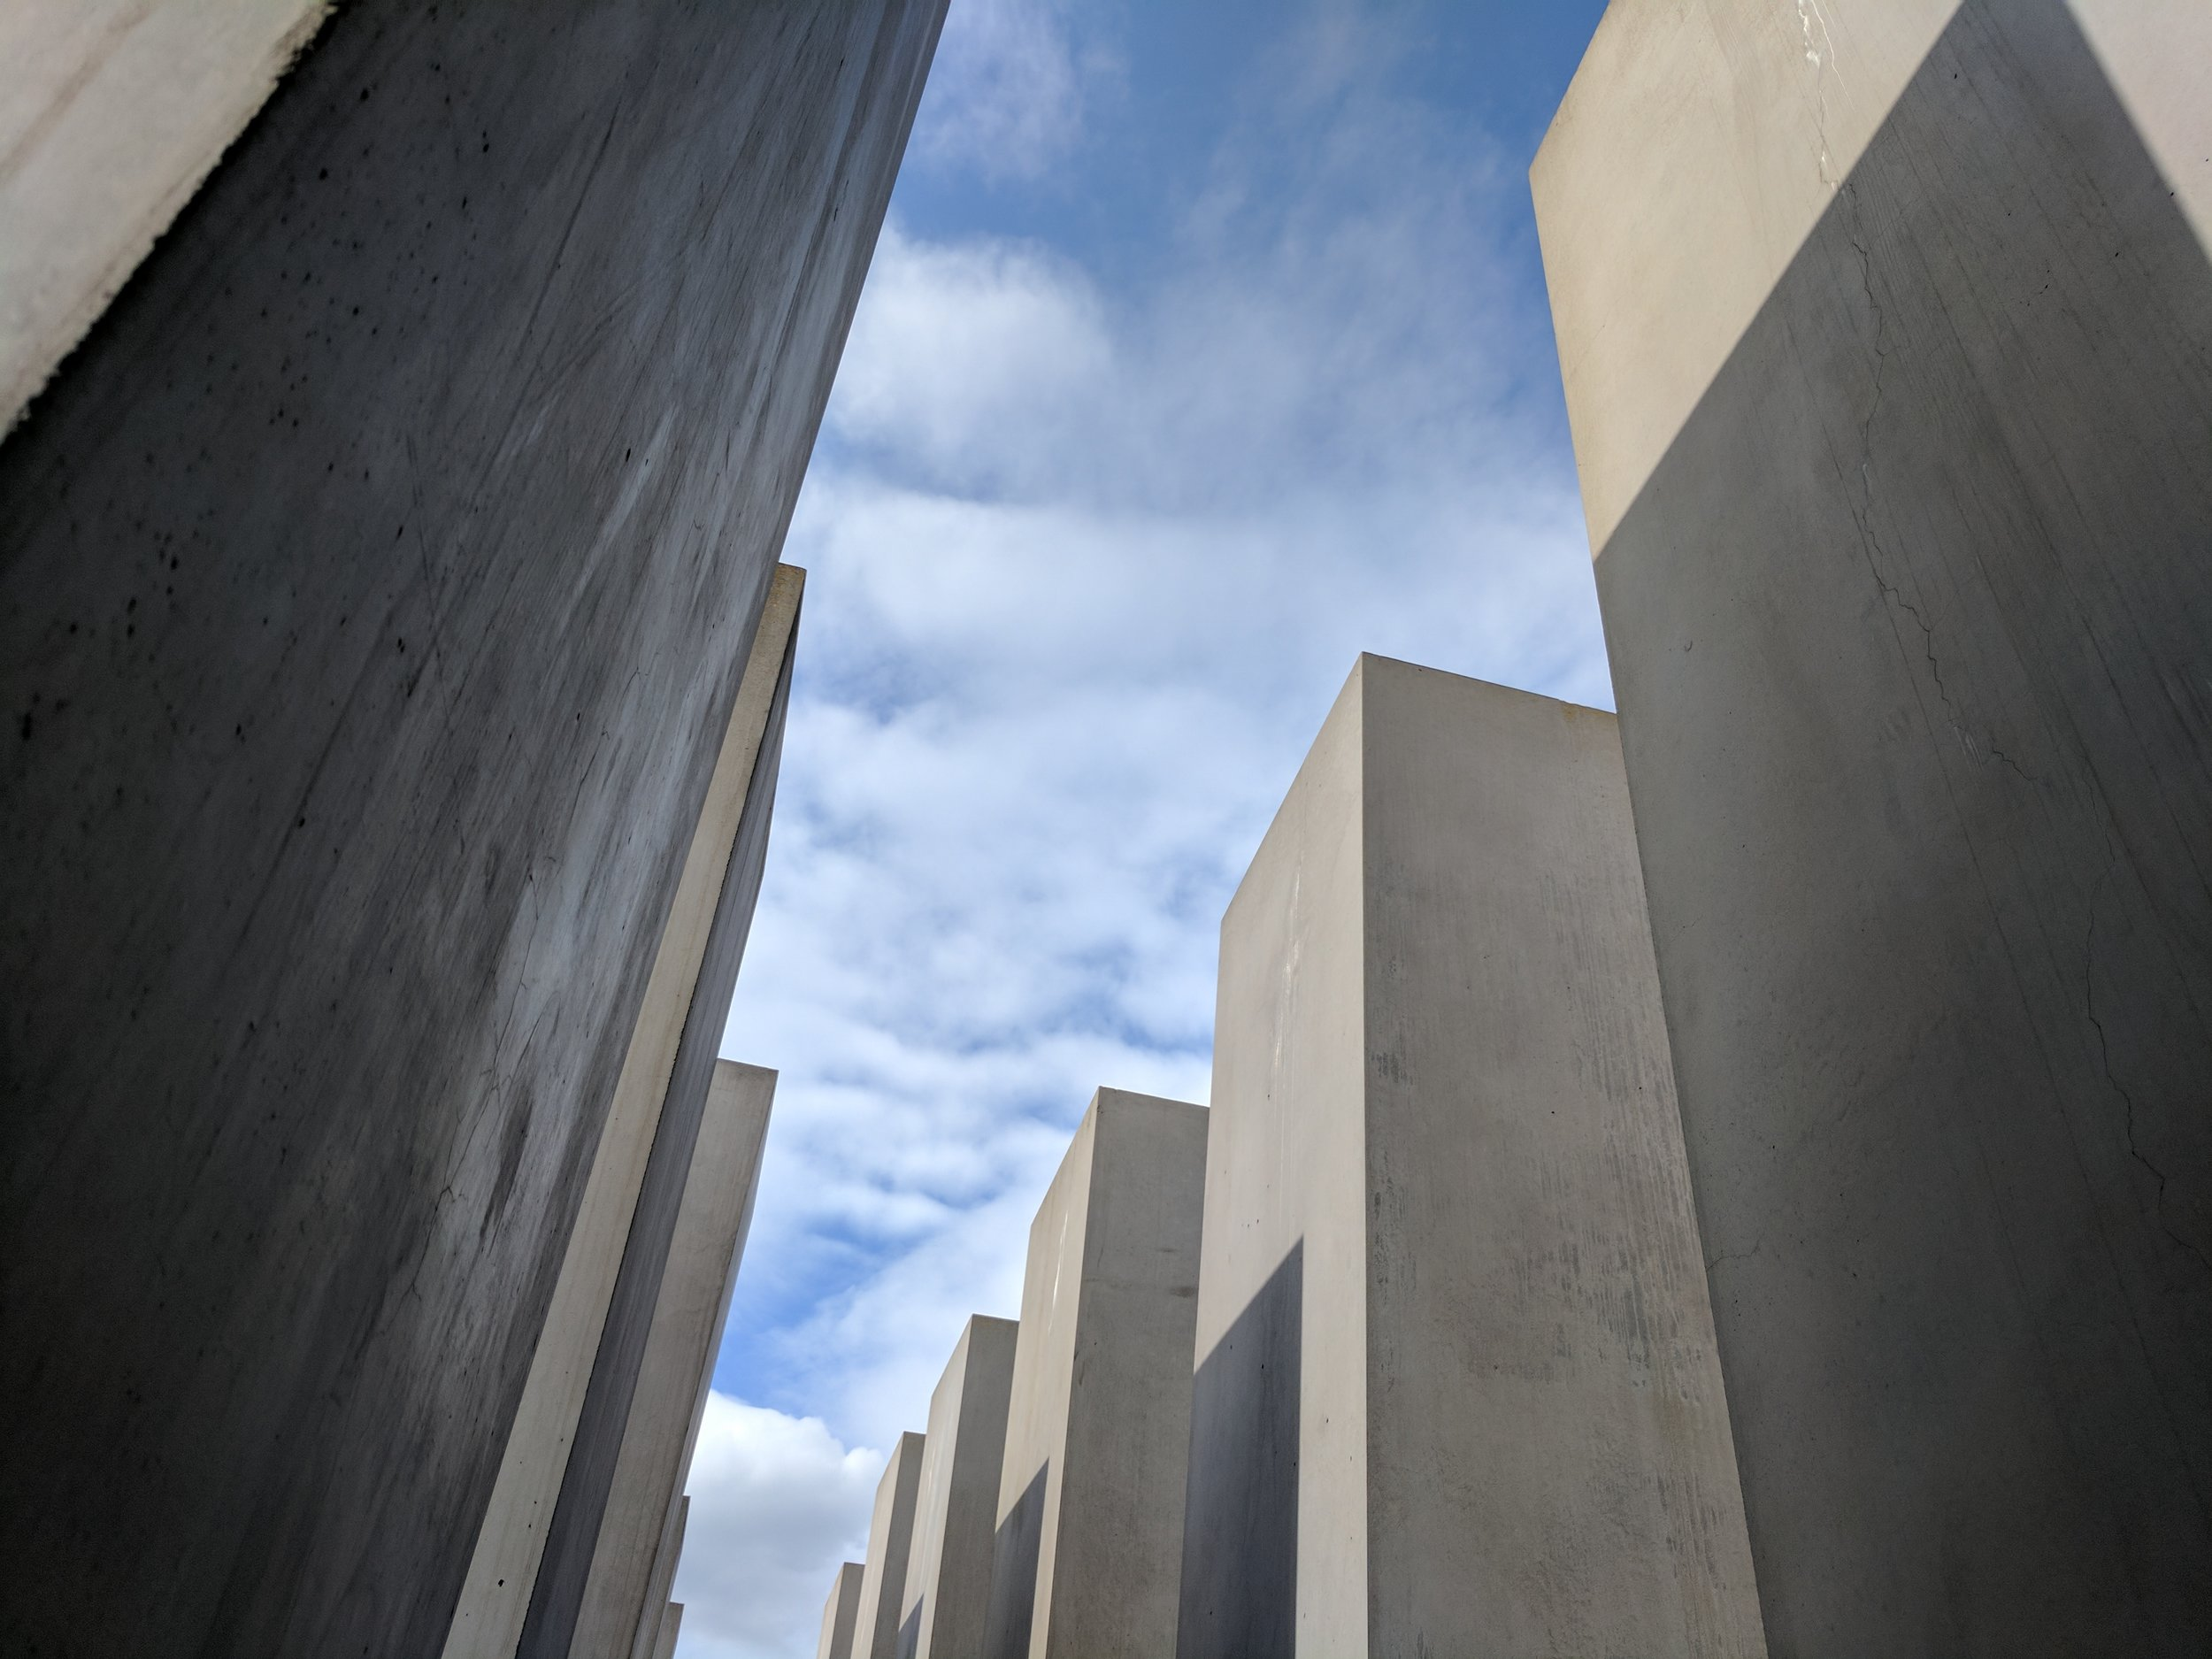 From within the memorial, I noticed that something about concrete stelae (also featured in the  Garden of Exile ) seems to resonate with this traumatic piece of Judaeo-Western history.